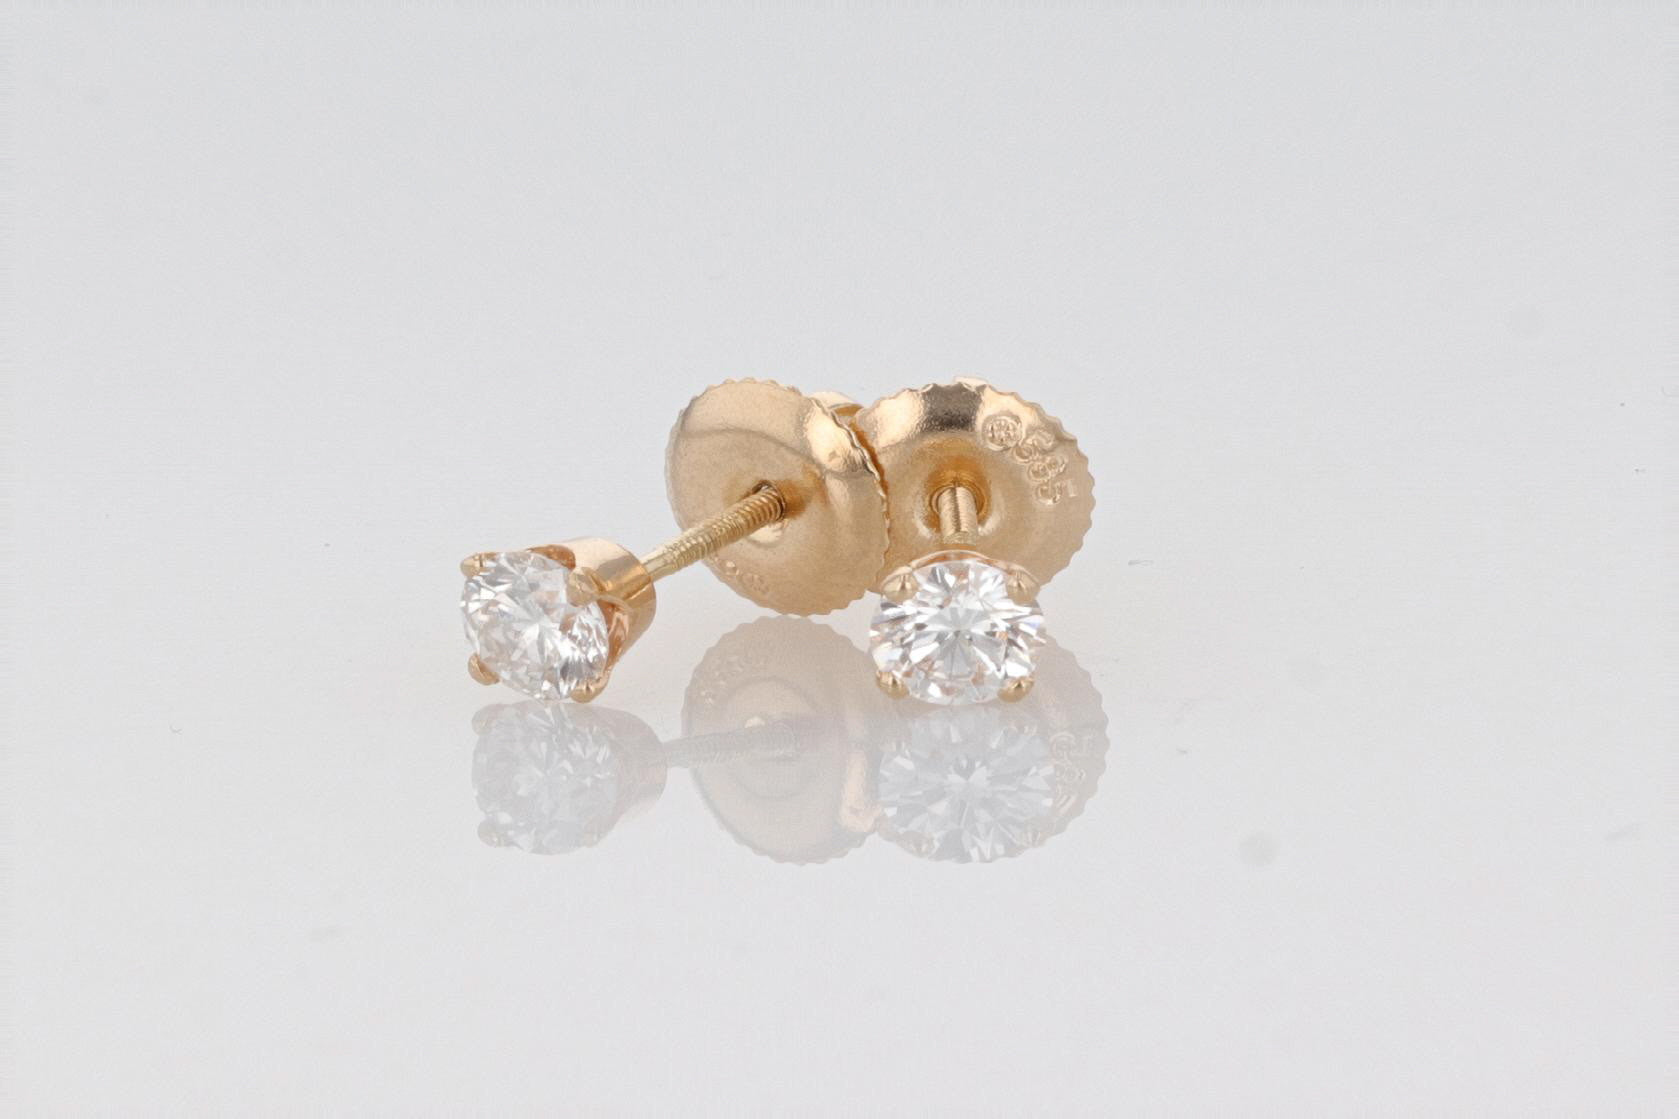 14K Women's Yellow Gold (Stamped 585) Studs